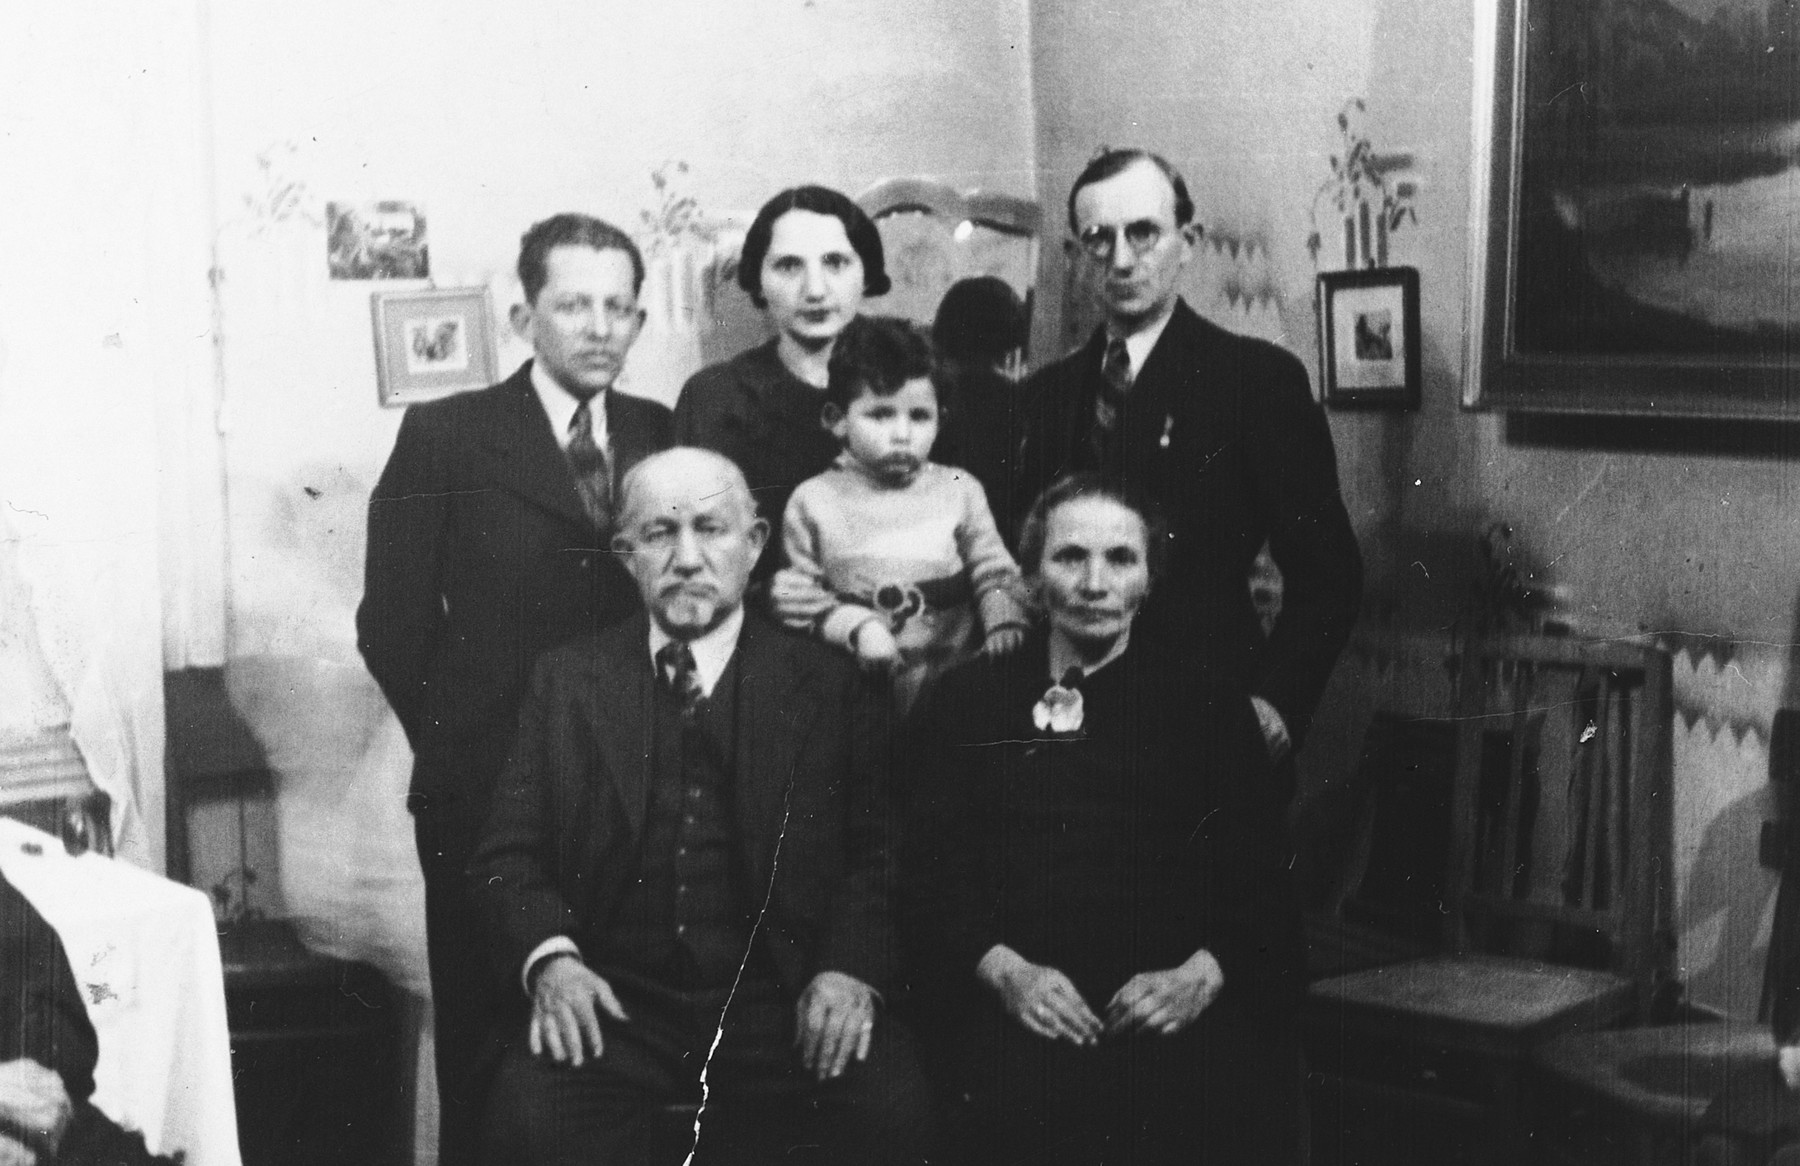 A Polish-Jewish family poses for a group portrait in their home.  Pictured are Leib and Mariam Adler; Schlameck Dunkelblau-Wintergreen; his wife, Erna Adler Dunkelblau-Wintergruen; her son, Jackie Dunkelblau-Wintergruen; and Herman Adler.  None of them survived.